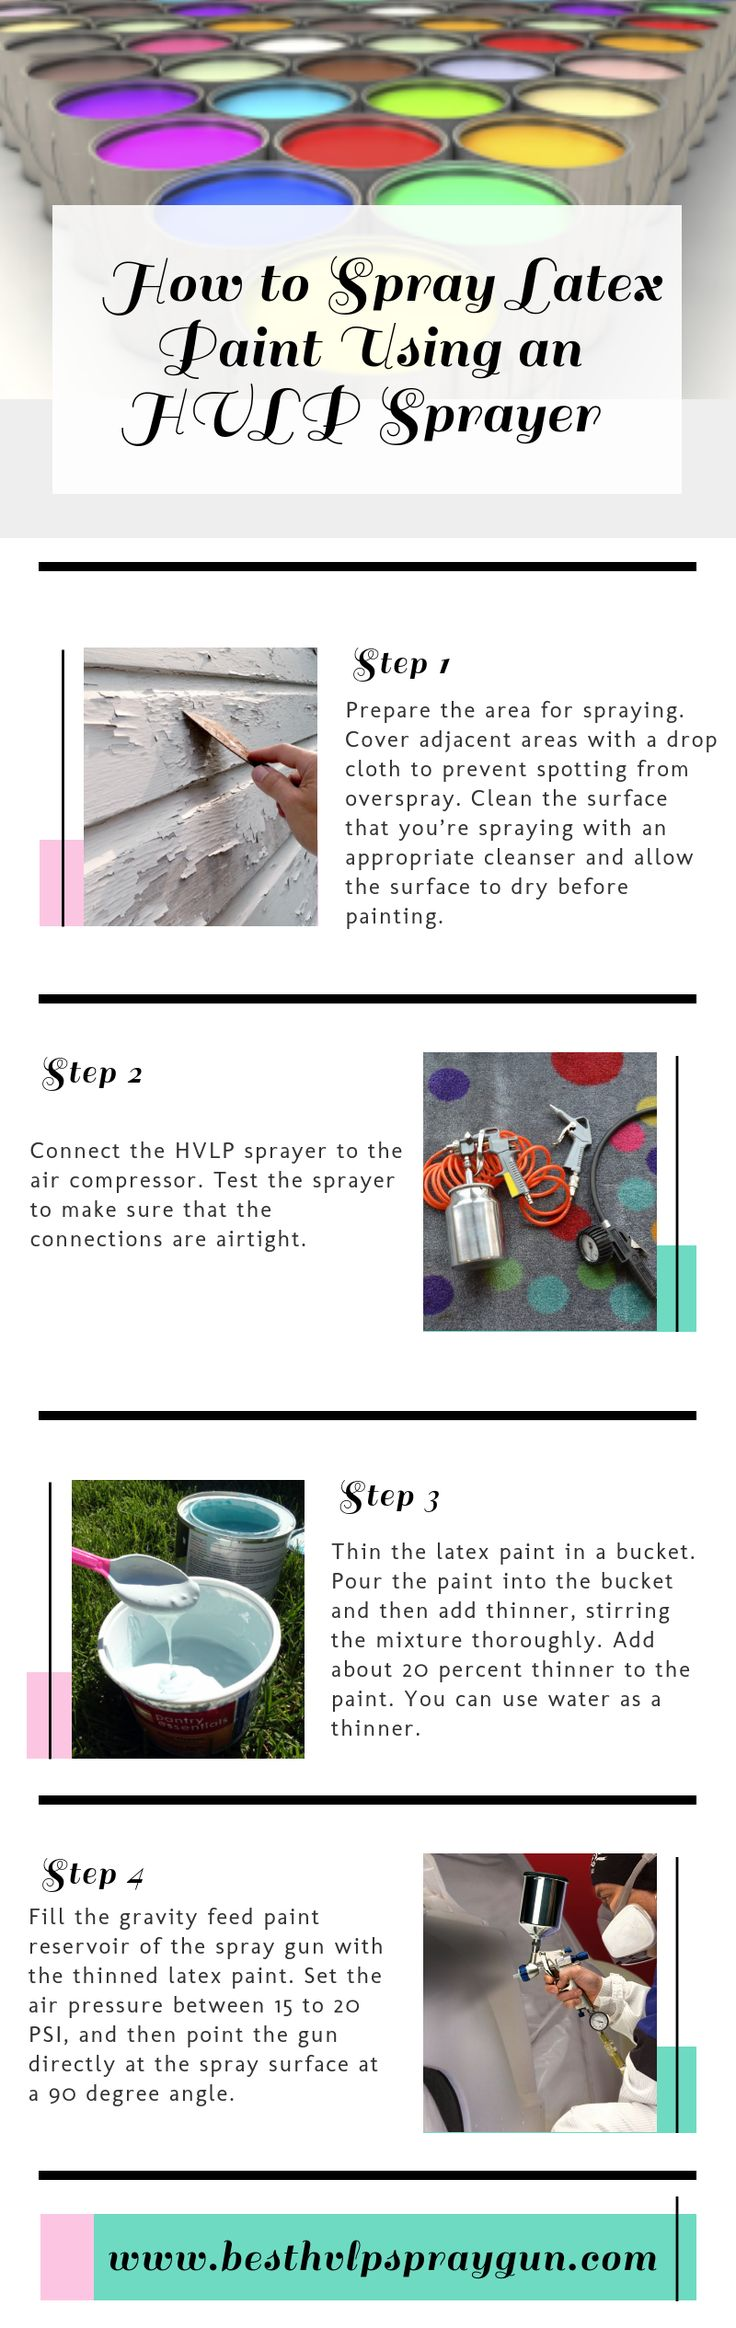 Guidelines to spray latex paint Using an #HVLP Sprayer If you are the first time user to spray #latex paint with the help of HVLP #sprayer, then you must check this infographic. Because here I've given some guidelines for how to do this task easily.